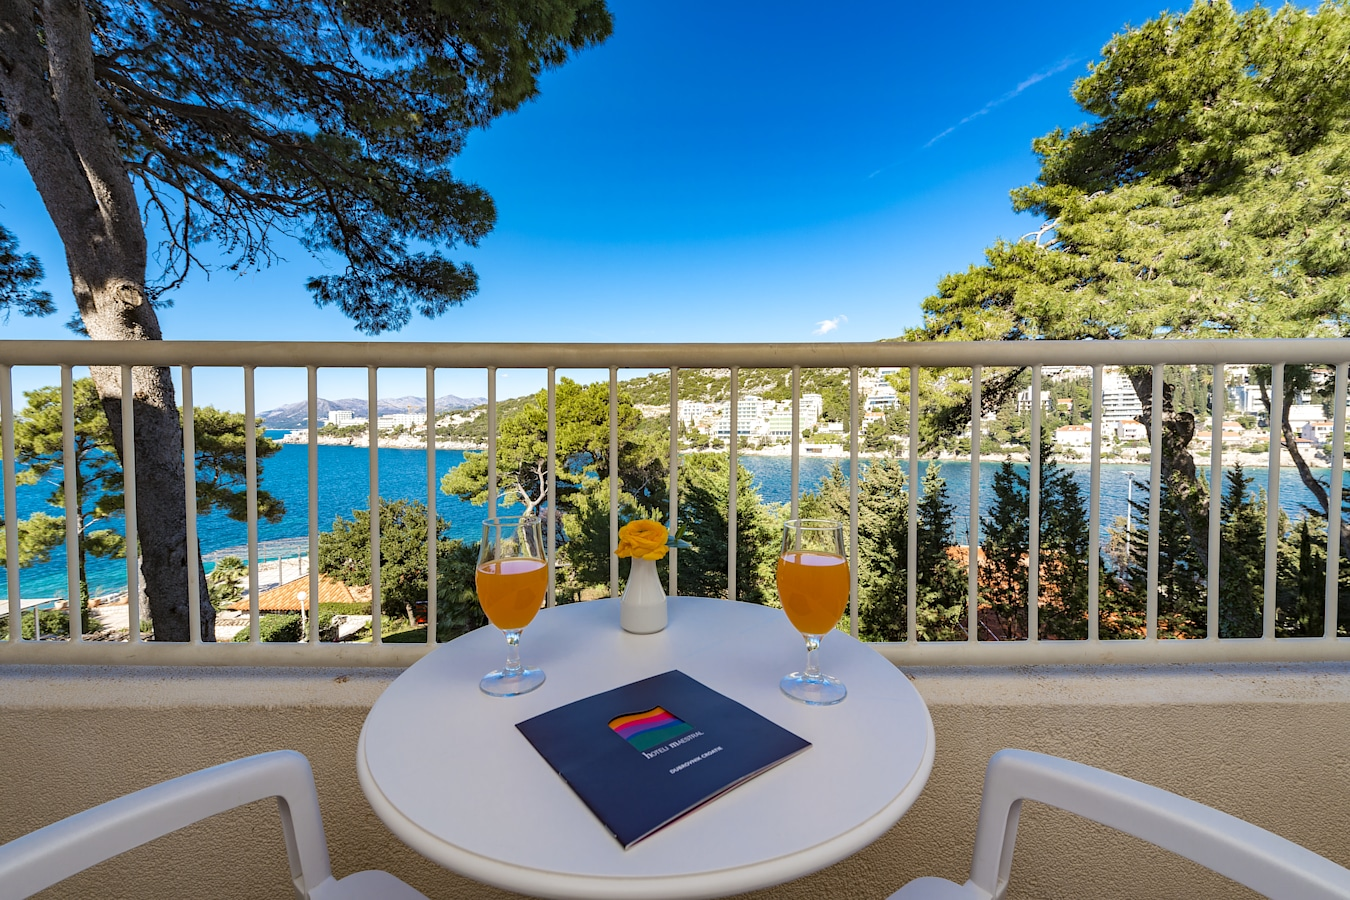 splendid-hotel-dubrovnik-sea-view-balcony.jpg